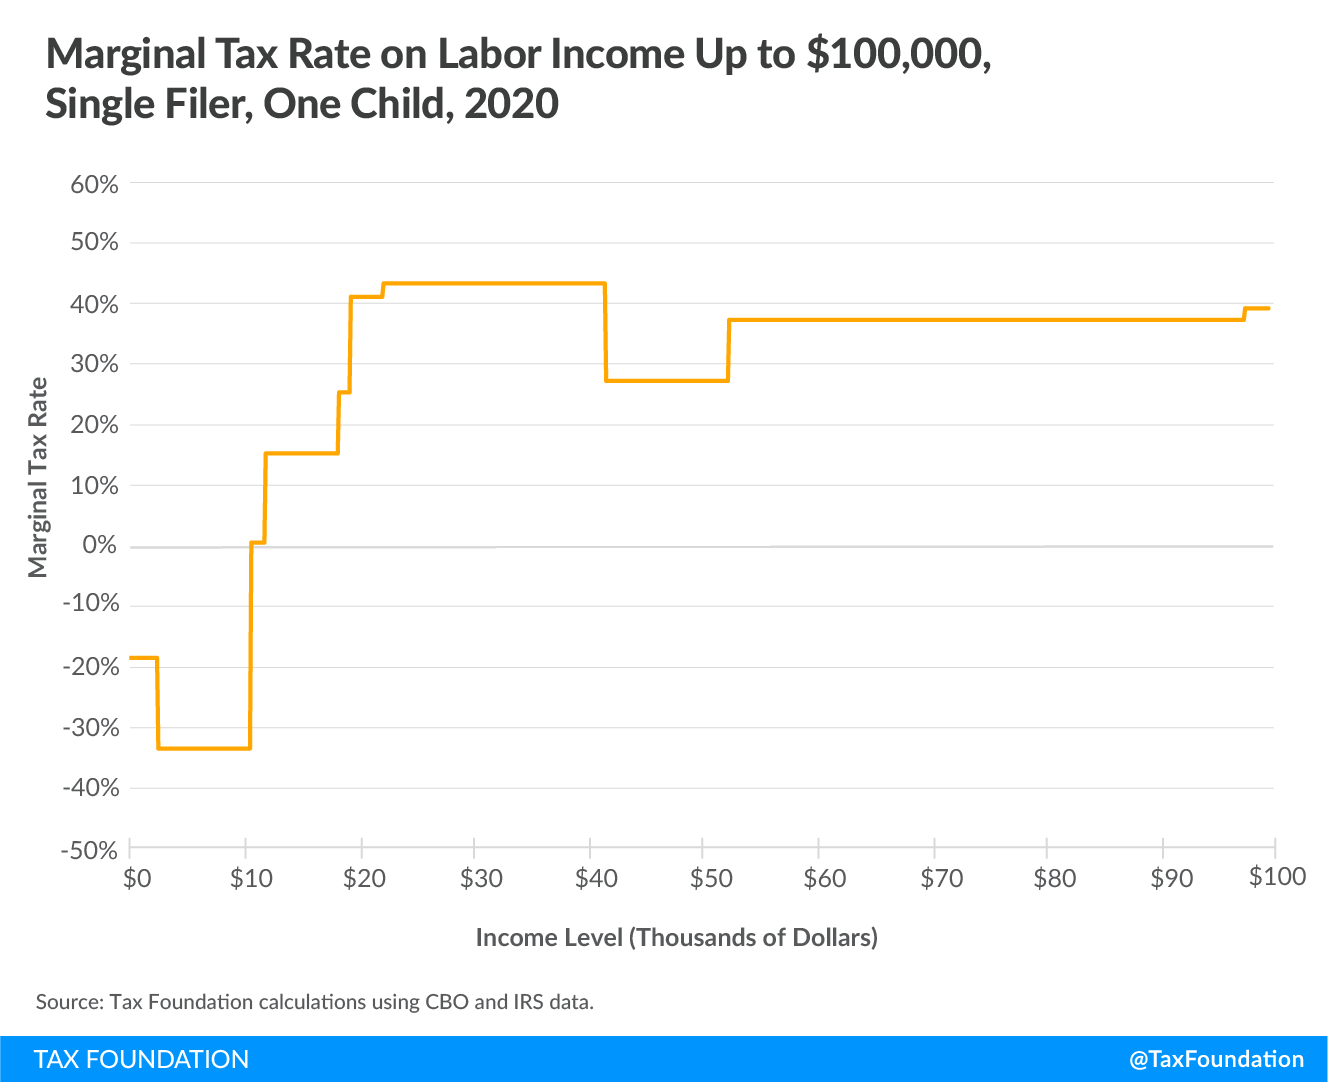 Marginal tax rate on labor income up to $100,000 single filer, one child 2020, Marginal Tax Rates on Labor Income in the U.S. After the Tax Cuts and Jobs Act